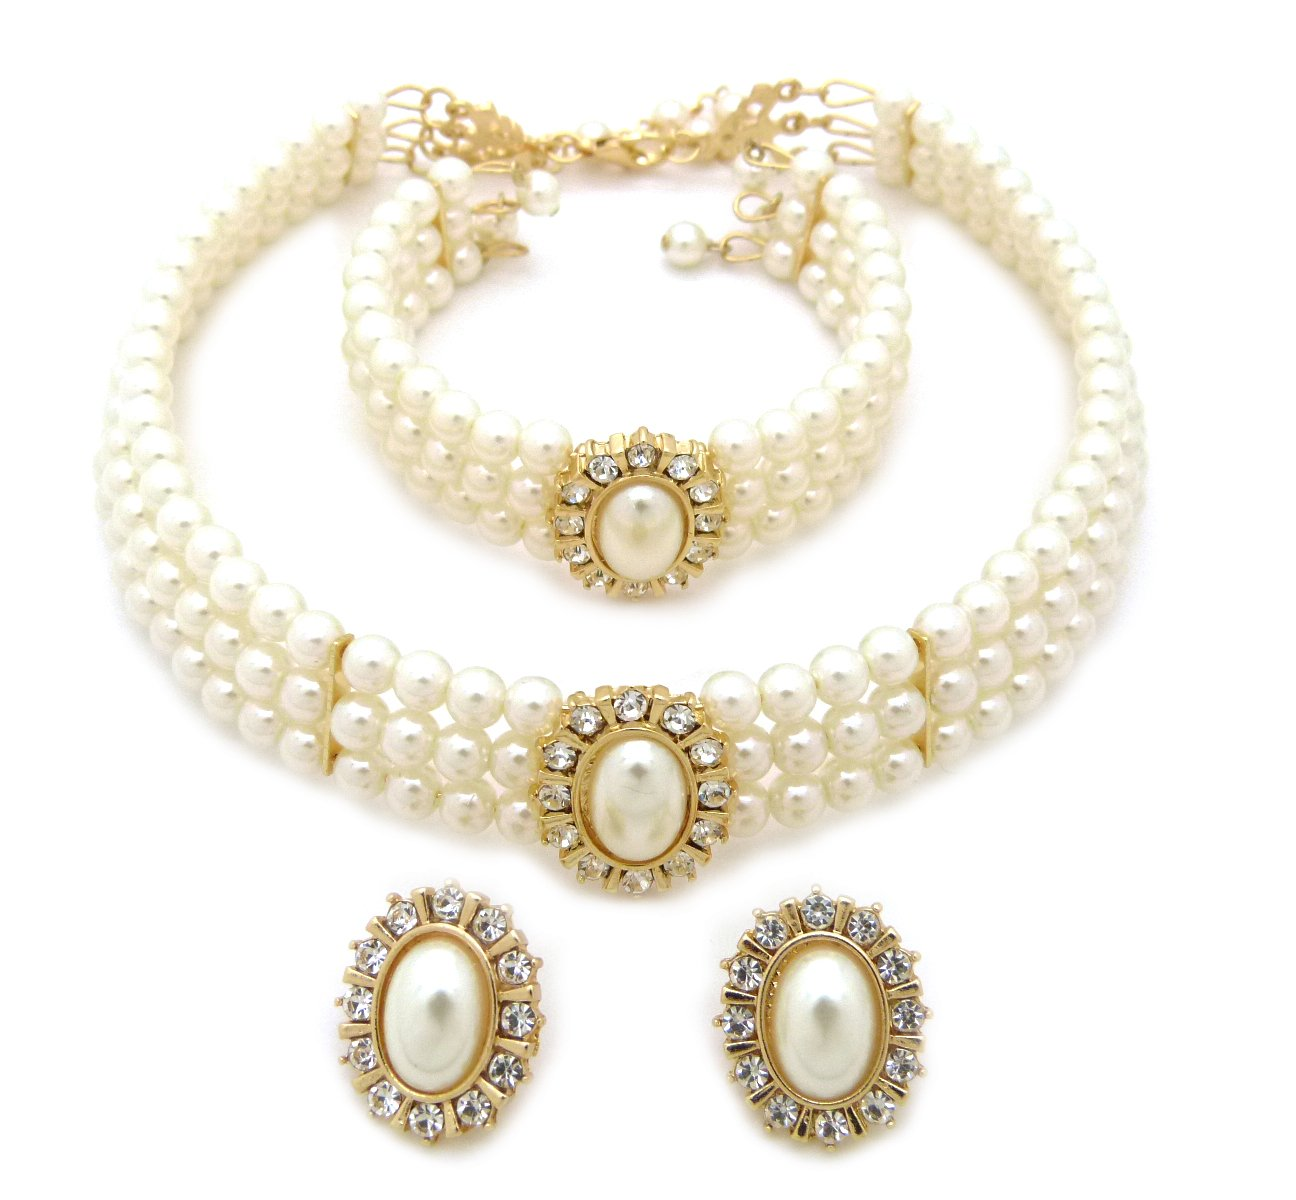 3 Rows Rhinestone Trimmed Simulated Pearl Choker Necklace, Bracelet, Pierced Earring 3 Set (Cream)